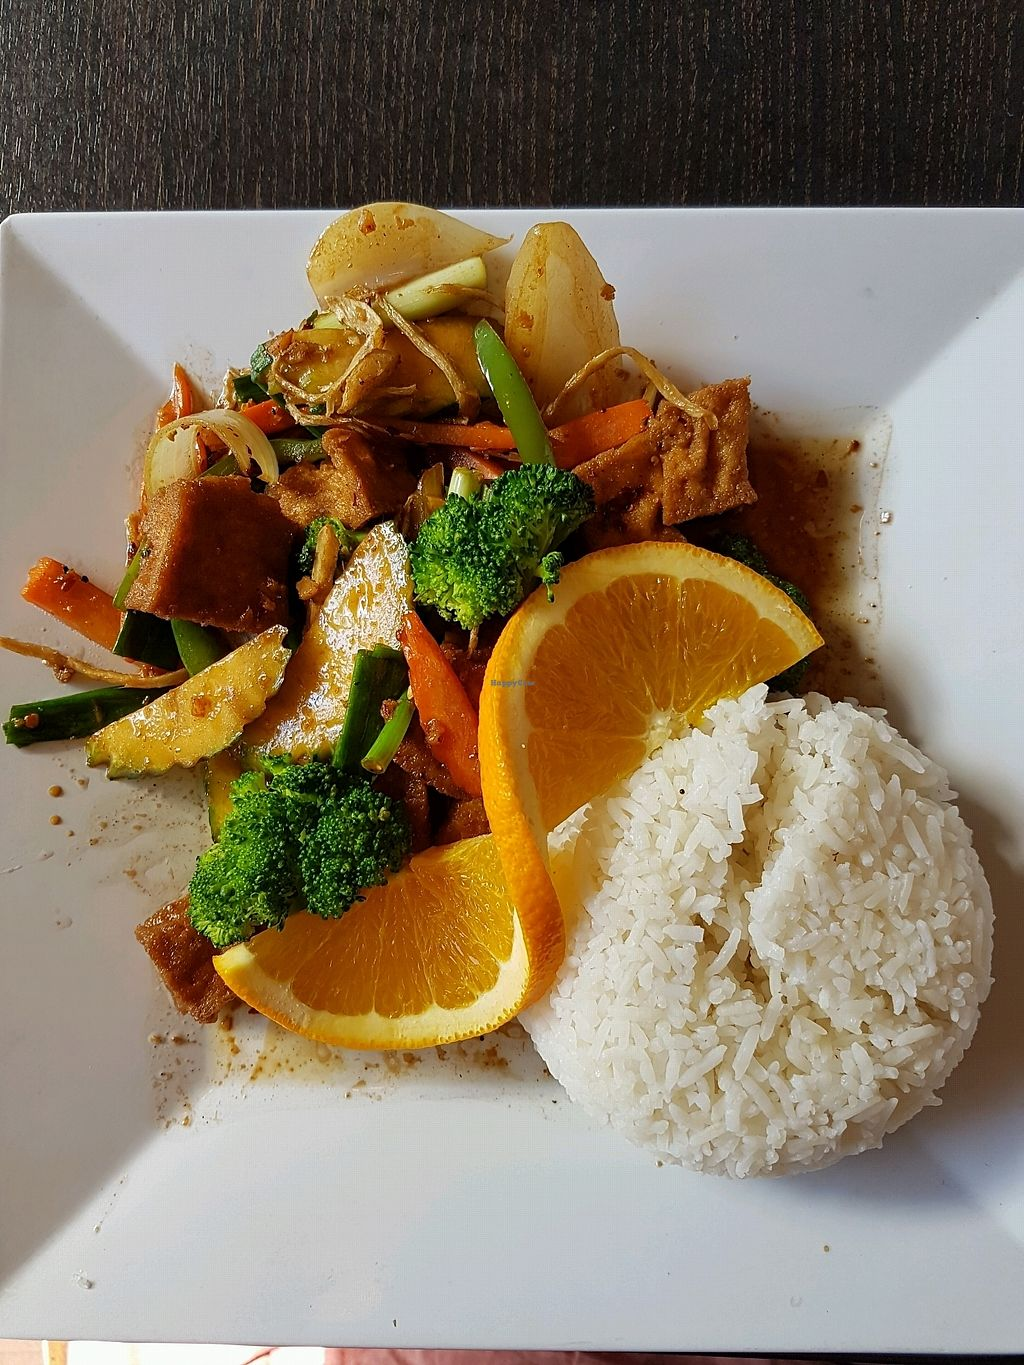 """Photo of Bangkok Happy Bowl  by <a href=""""/members/profile/uschiverena"""">uschiverena</a> <br/>ginger stir fry <br/> October 30, 2017  - <a href='/contact/abuse/image/78330/320070'>Report</a>"""